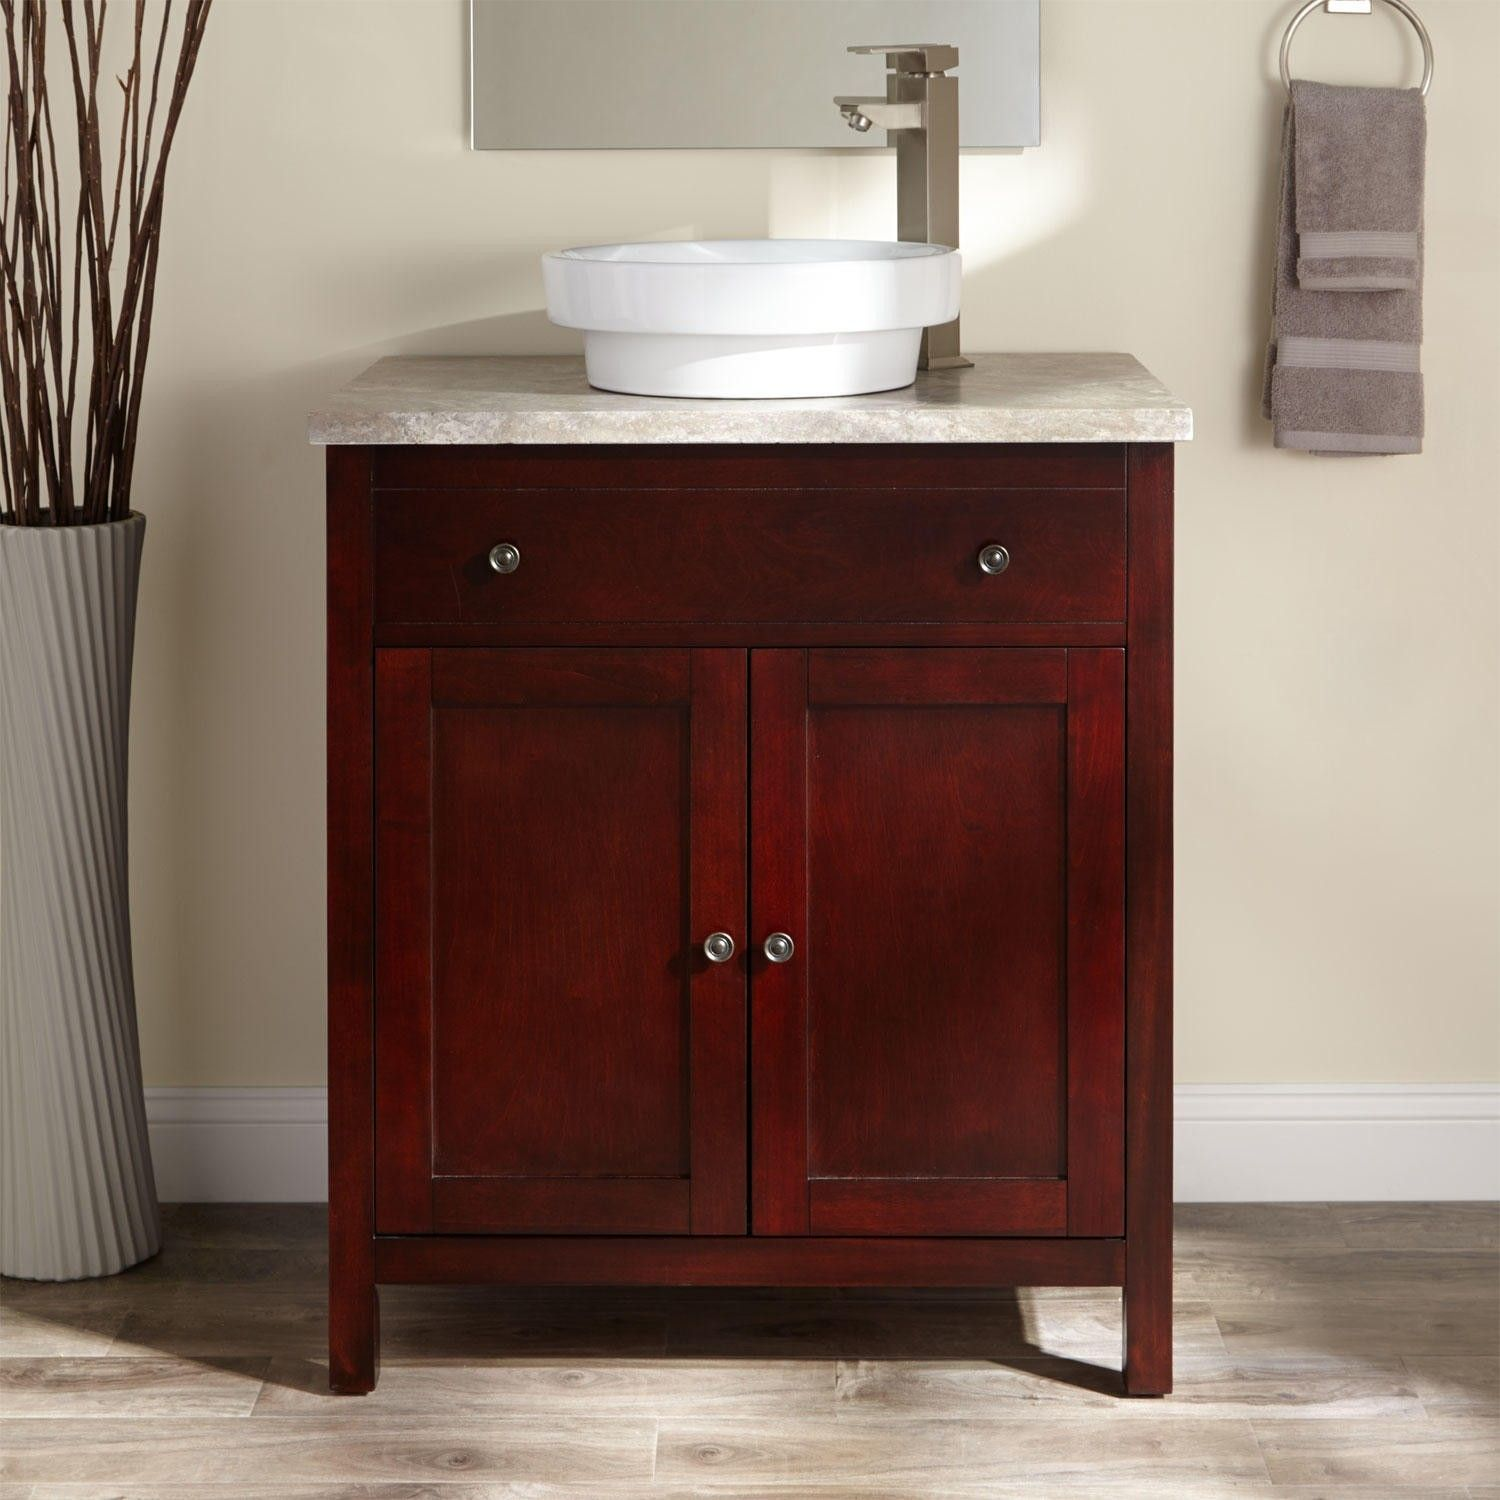 Clic Wooden Bathroom Vanity In Cherry Glazed With Square Legs